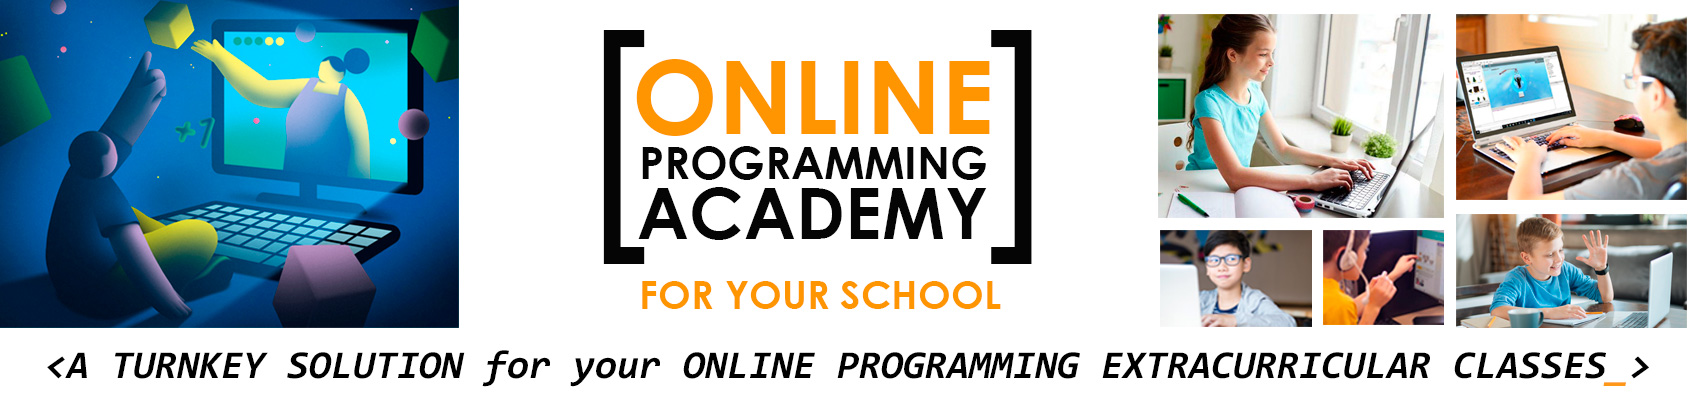 Online Programming Academy for your school